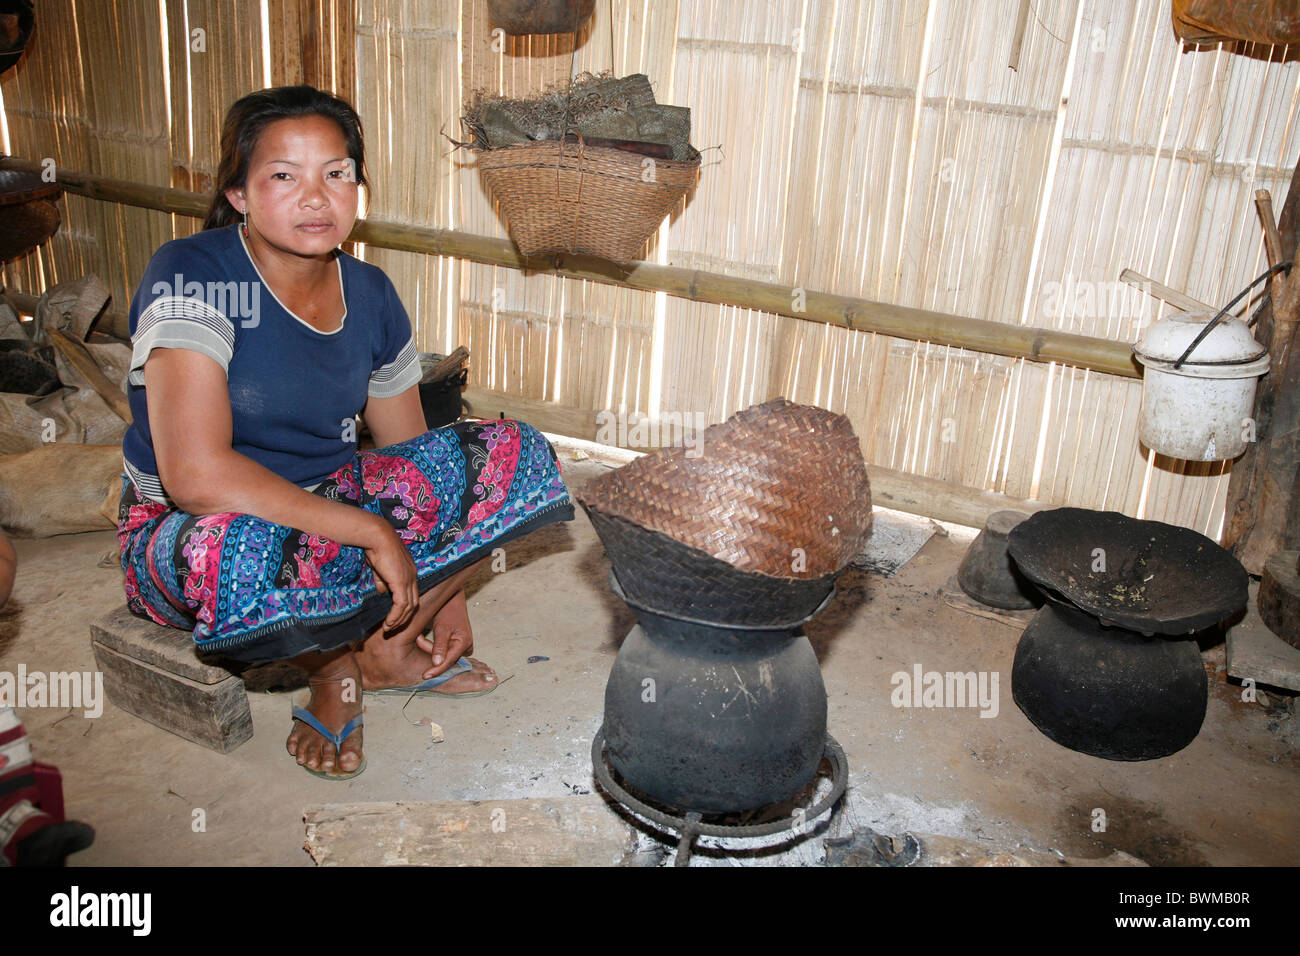 laos asia miao minority hmong people village hut woman cooking